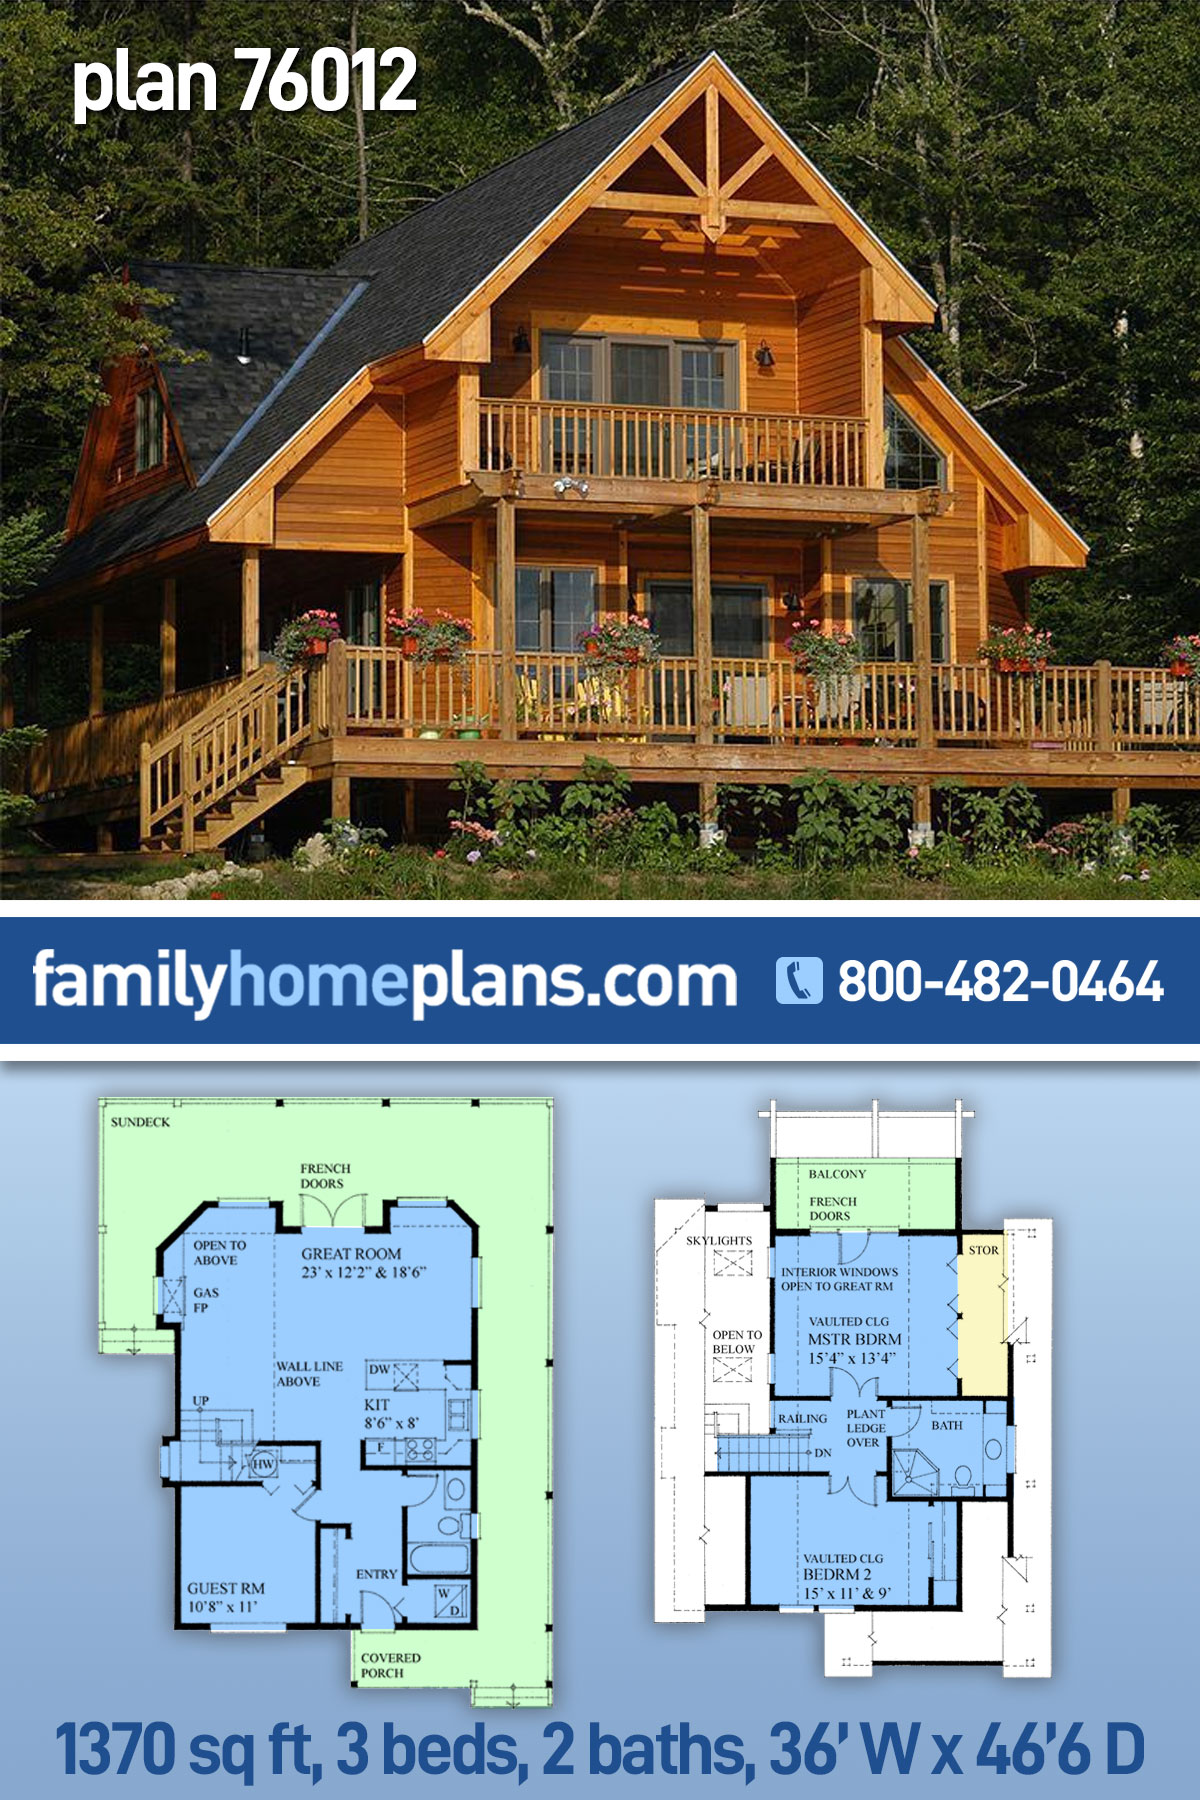 Cabin, Contemporary House Plan 76012 with 3 Beds, 2 Baths